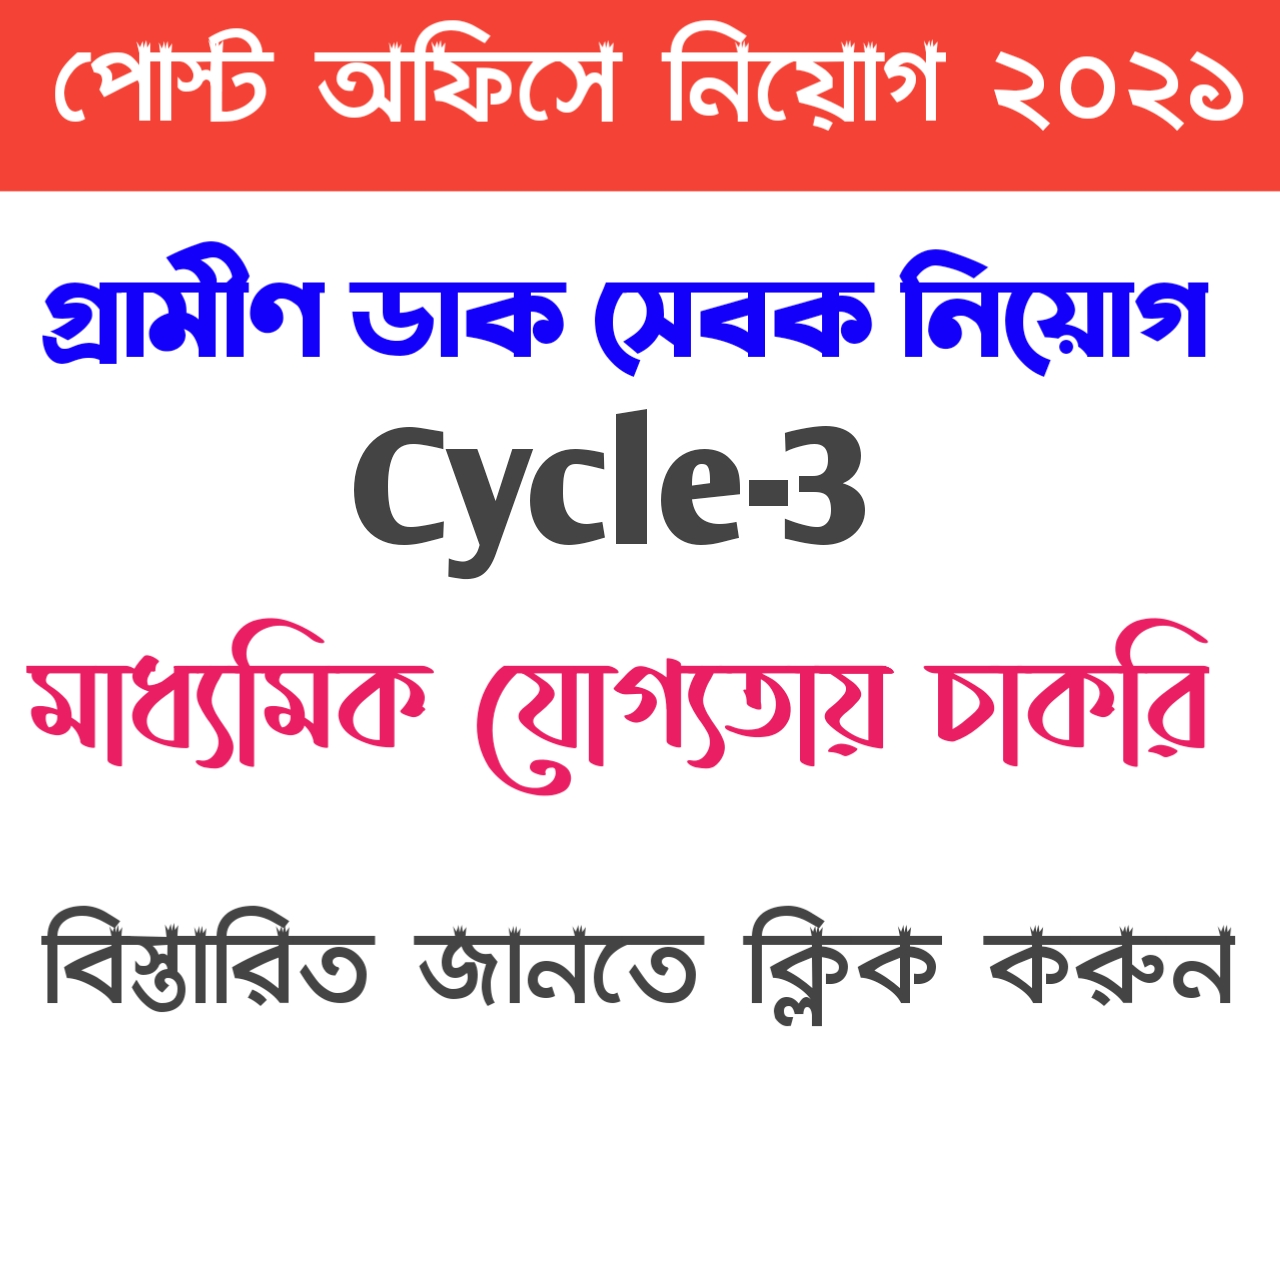 WB GDS CYCLE 3 NOTIFICATION